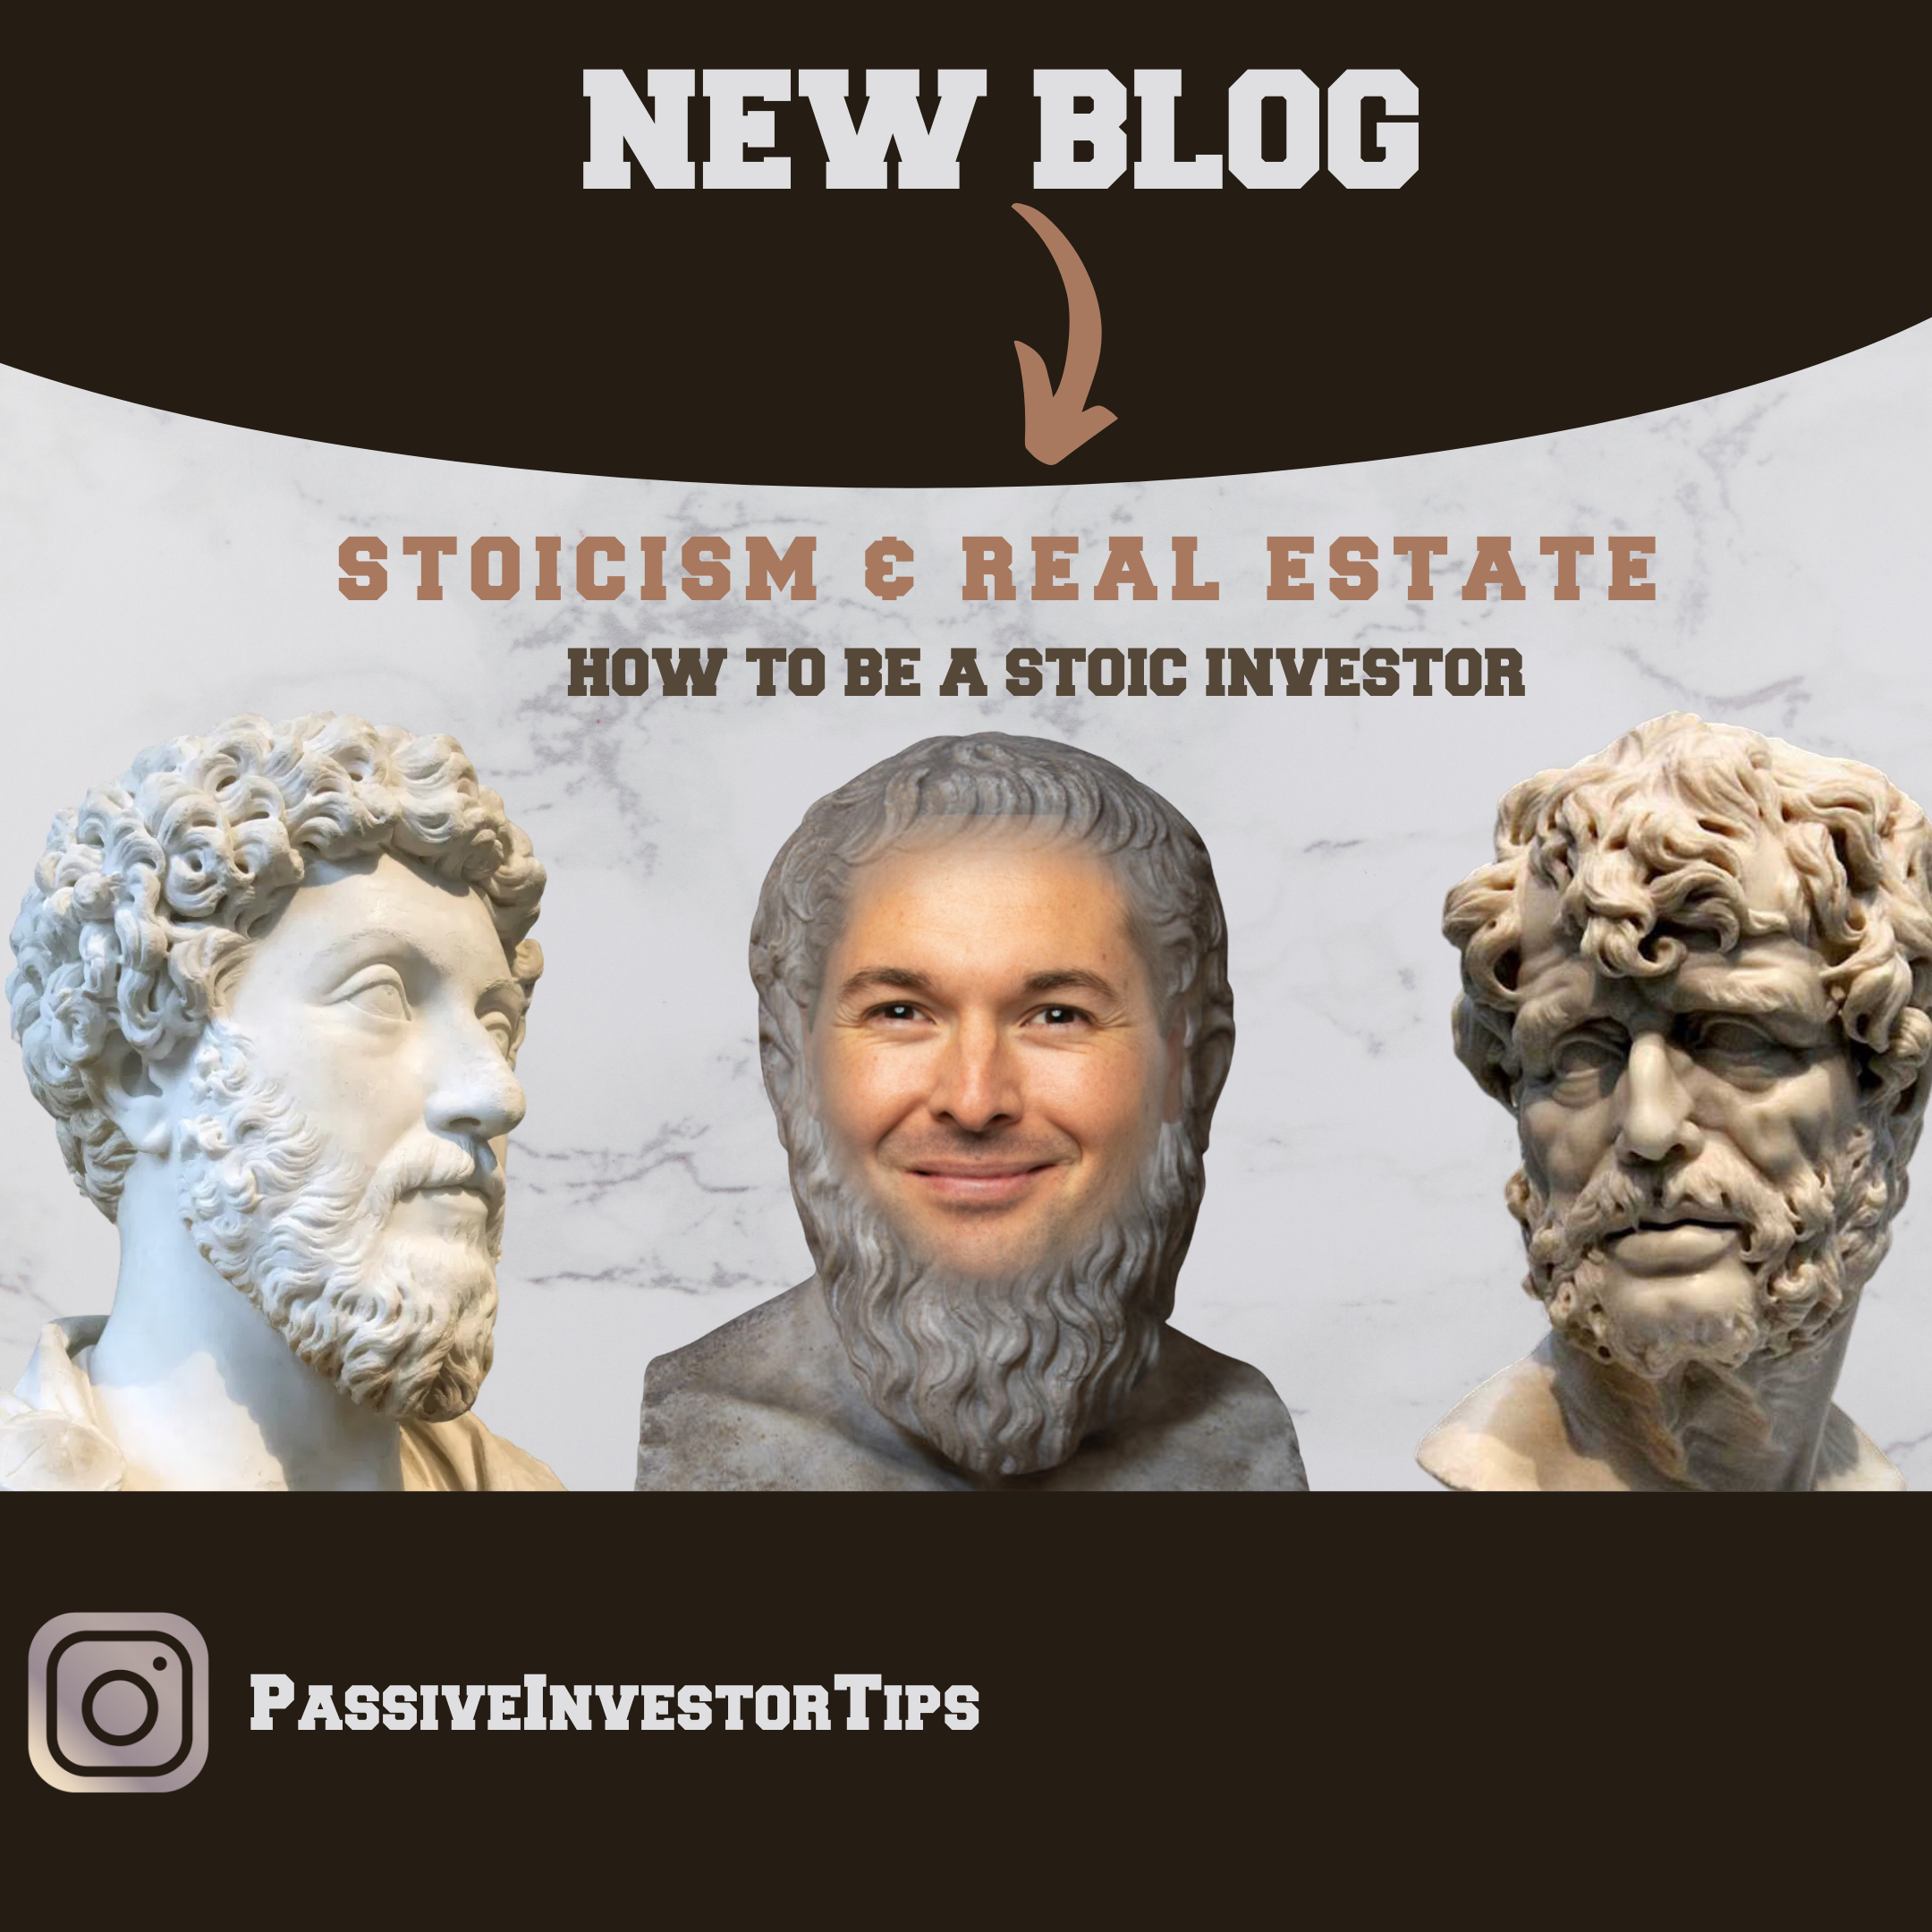 Stoicism & Real Estate - How To Be A Stoic Investor